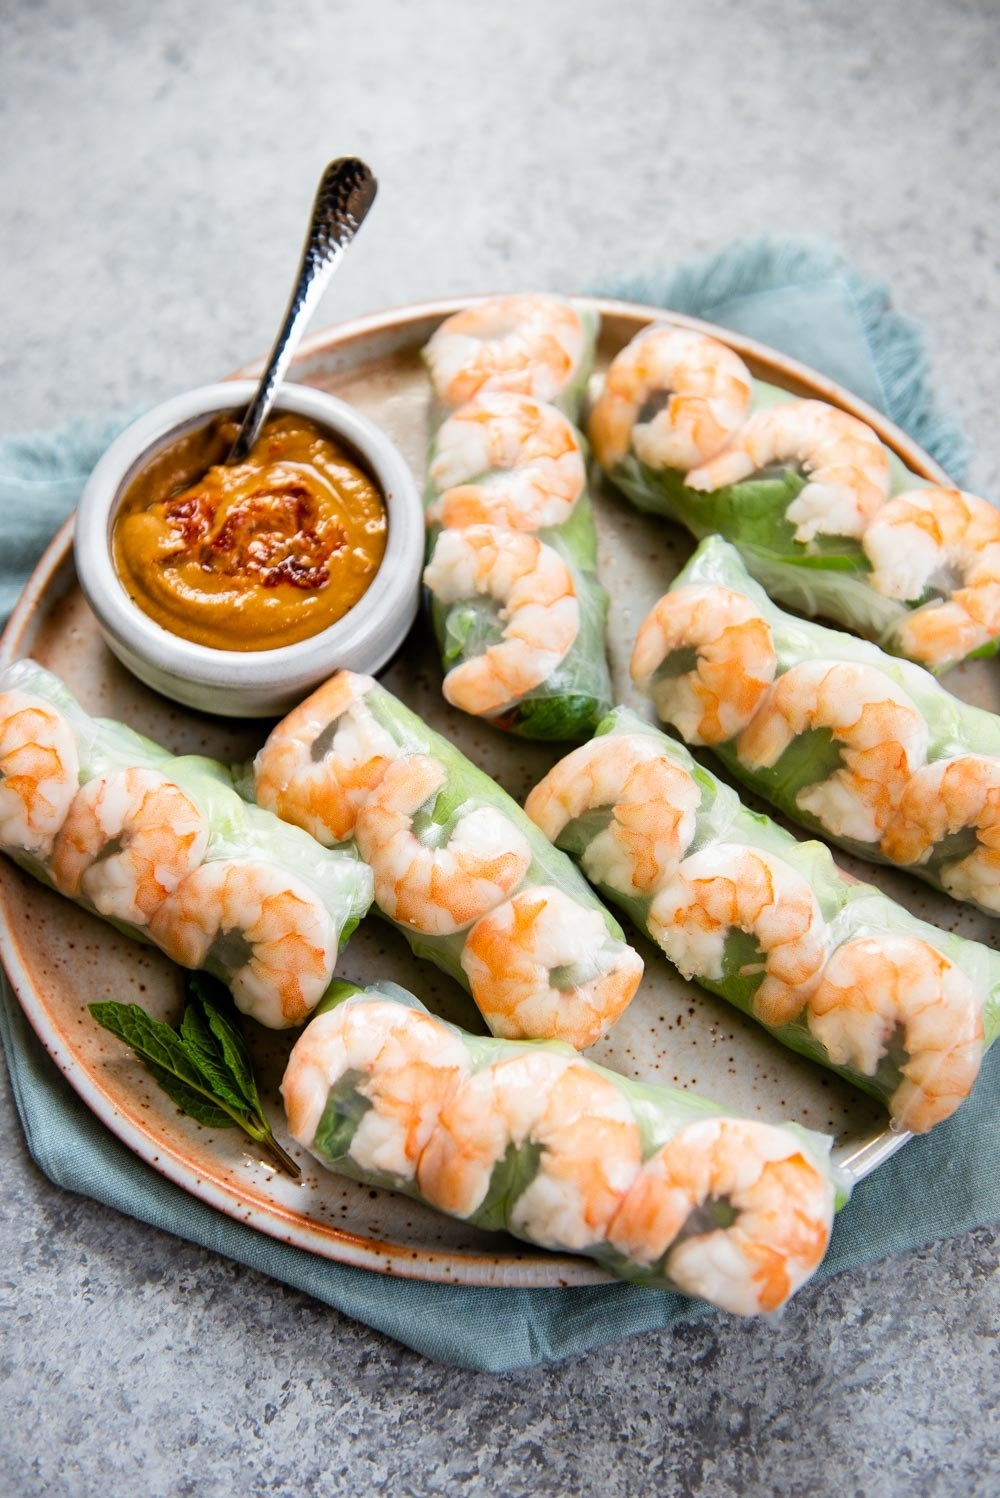 A plate of spring rolls, tightly wrapped and see through so plump shrimp and greens show; a small bowl of a spicy and creamy peanut sauce sits beside them